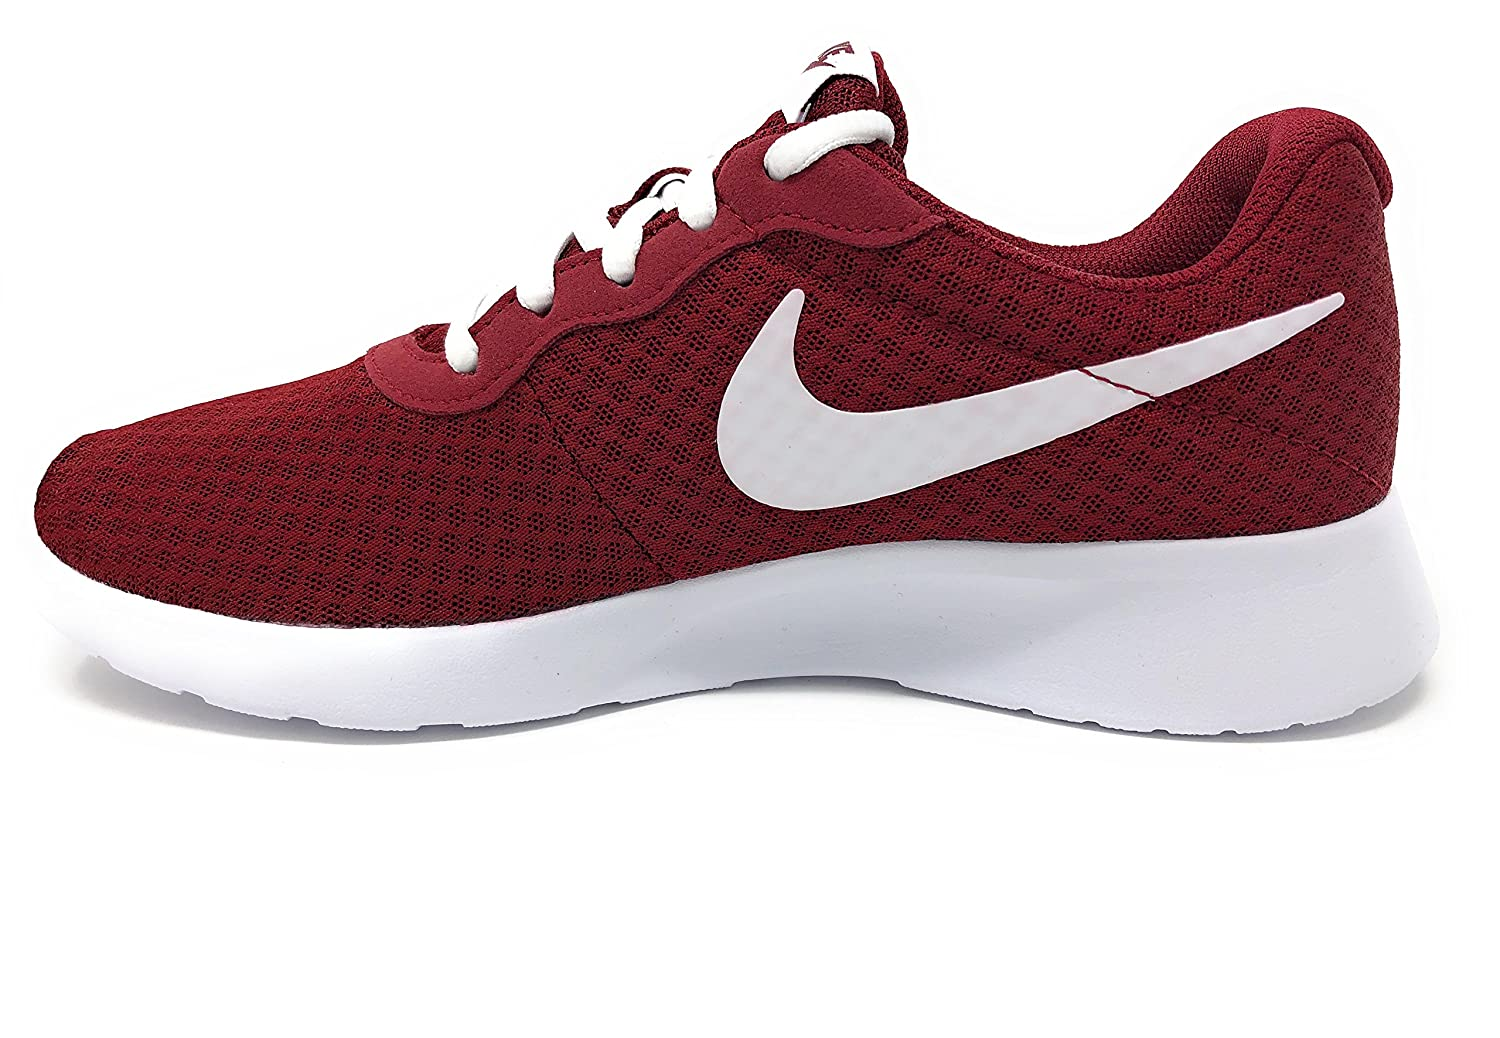 Amazon.com | NIKE Womens Tanjun Team Red/White Size 6 B(M) US | Fashion Sneakers